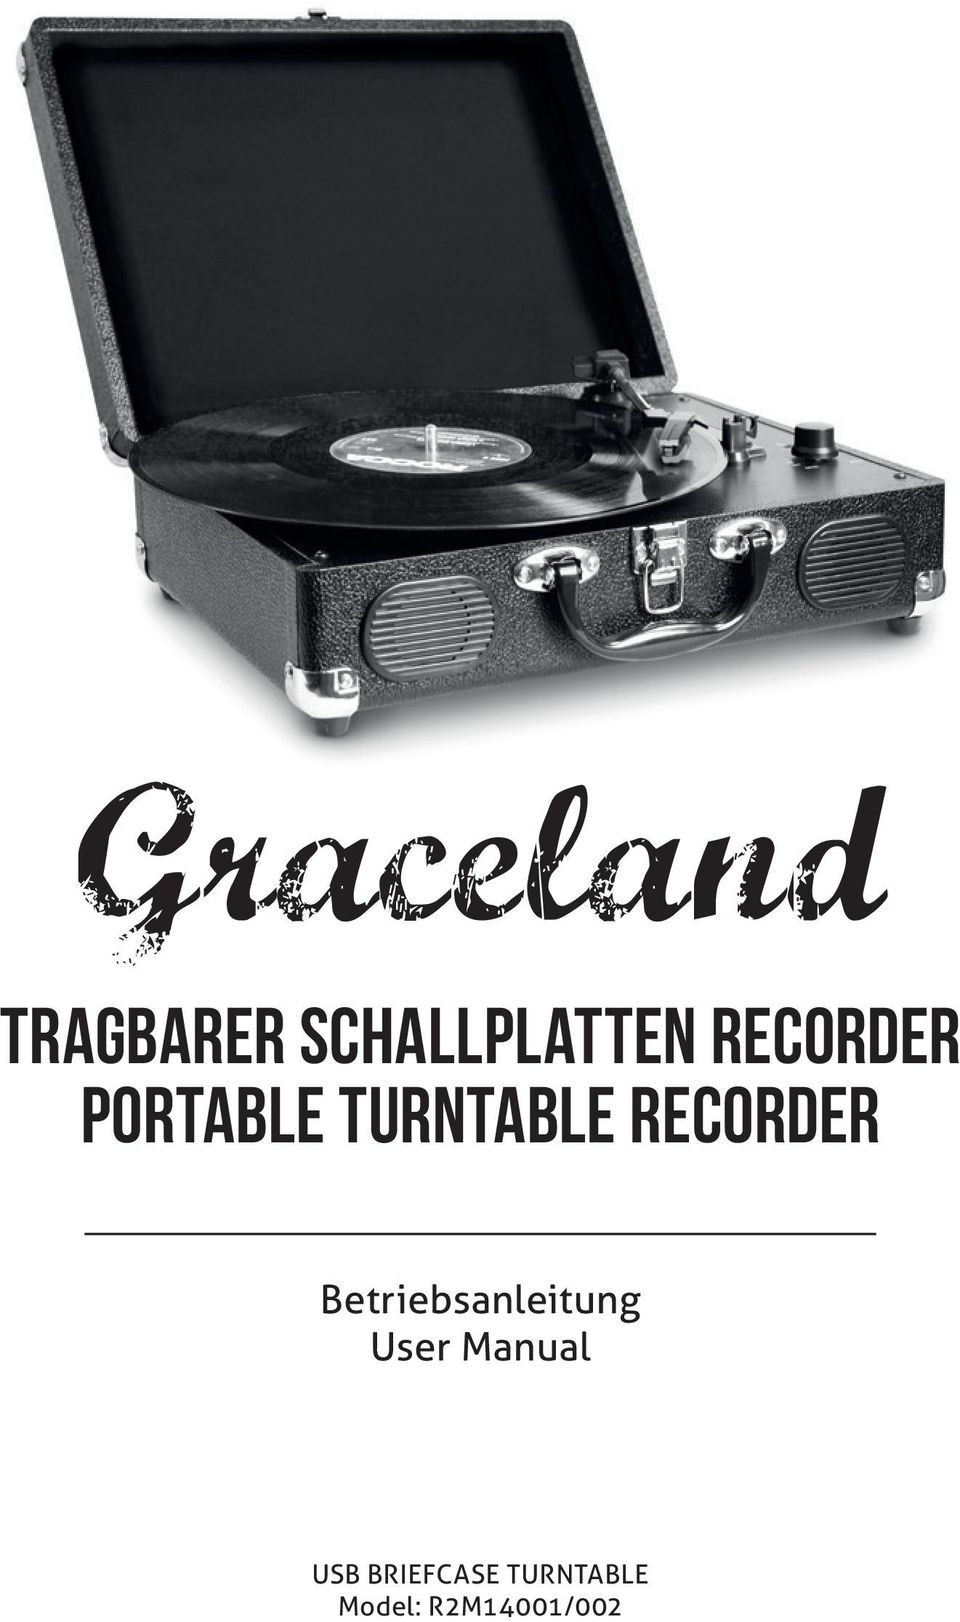 Graceland Tragbarer Schallplatten Recorder Portable Turntable Paket Ebook Tc Learning Management System Betriebsanleitung User